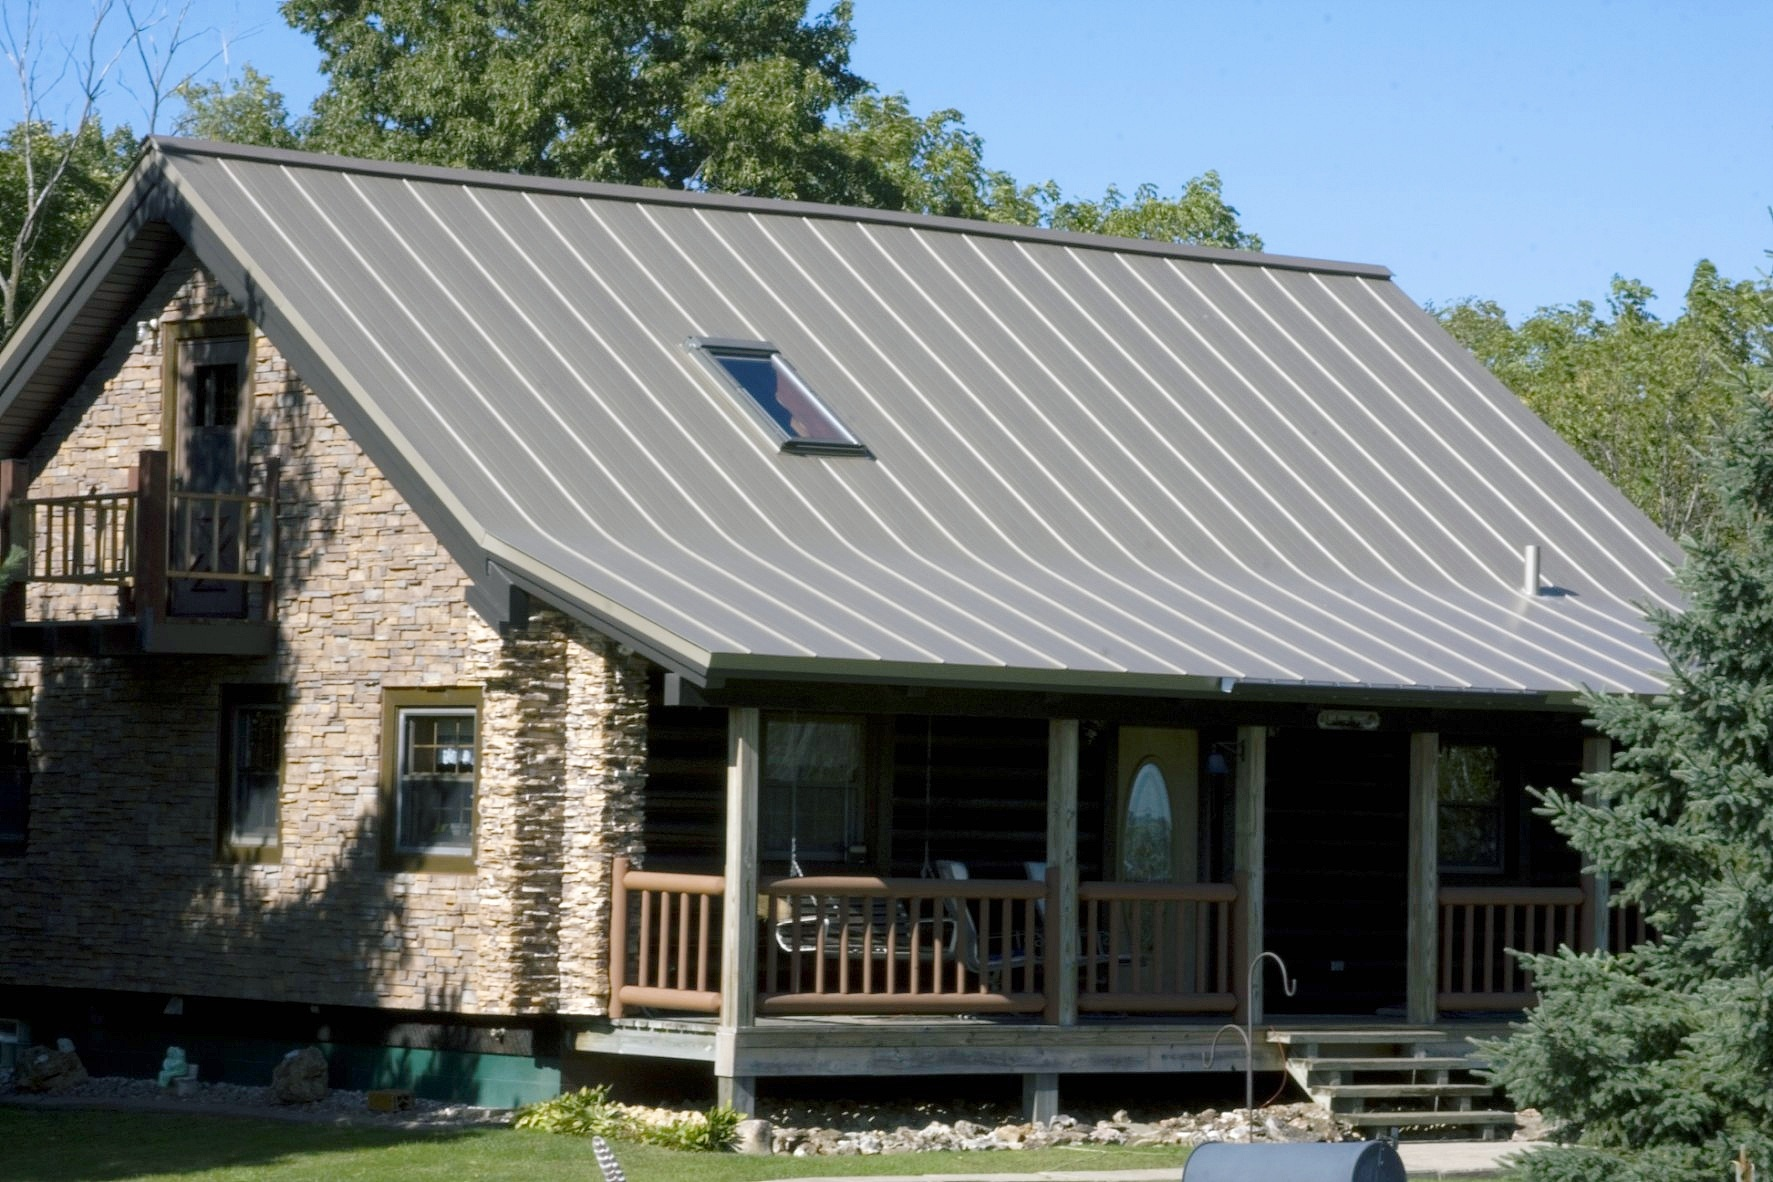 metal roofing standing seam grey champagne wisconsin iowa minnesota illinois north dakota silver house residential sheet